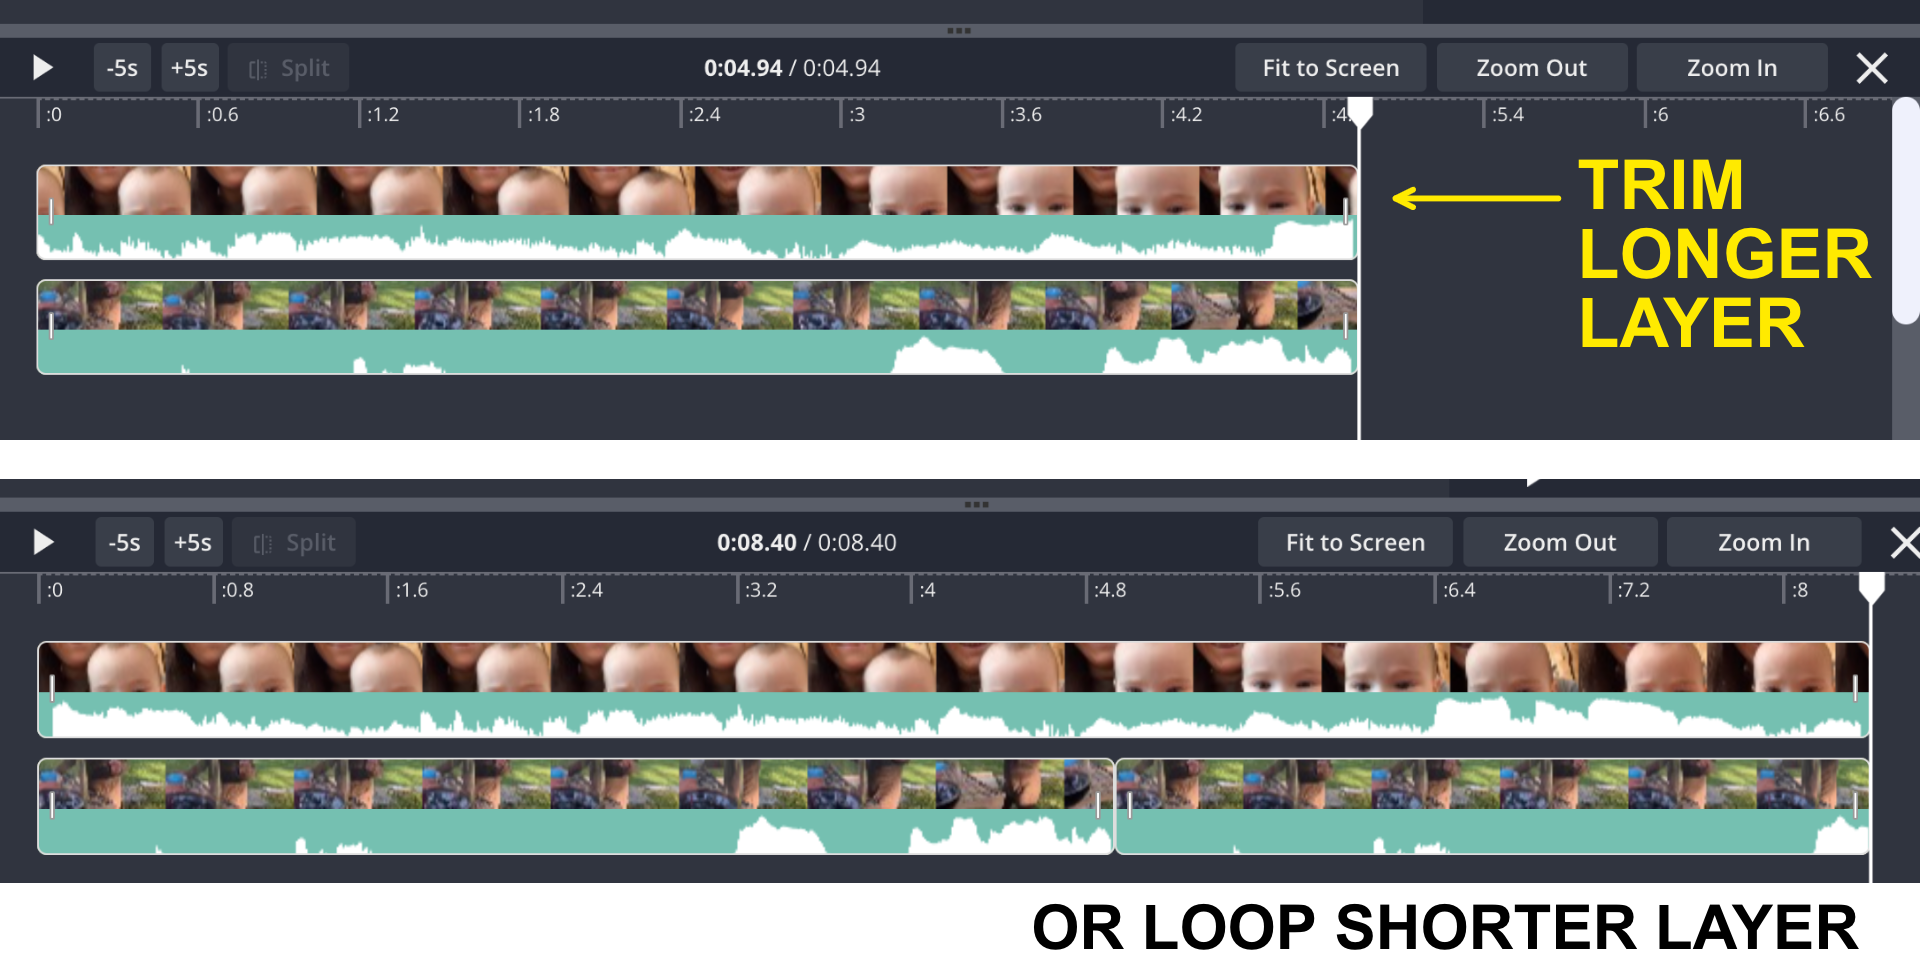 Side by side videos in timeline